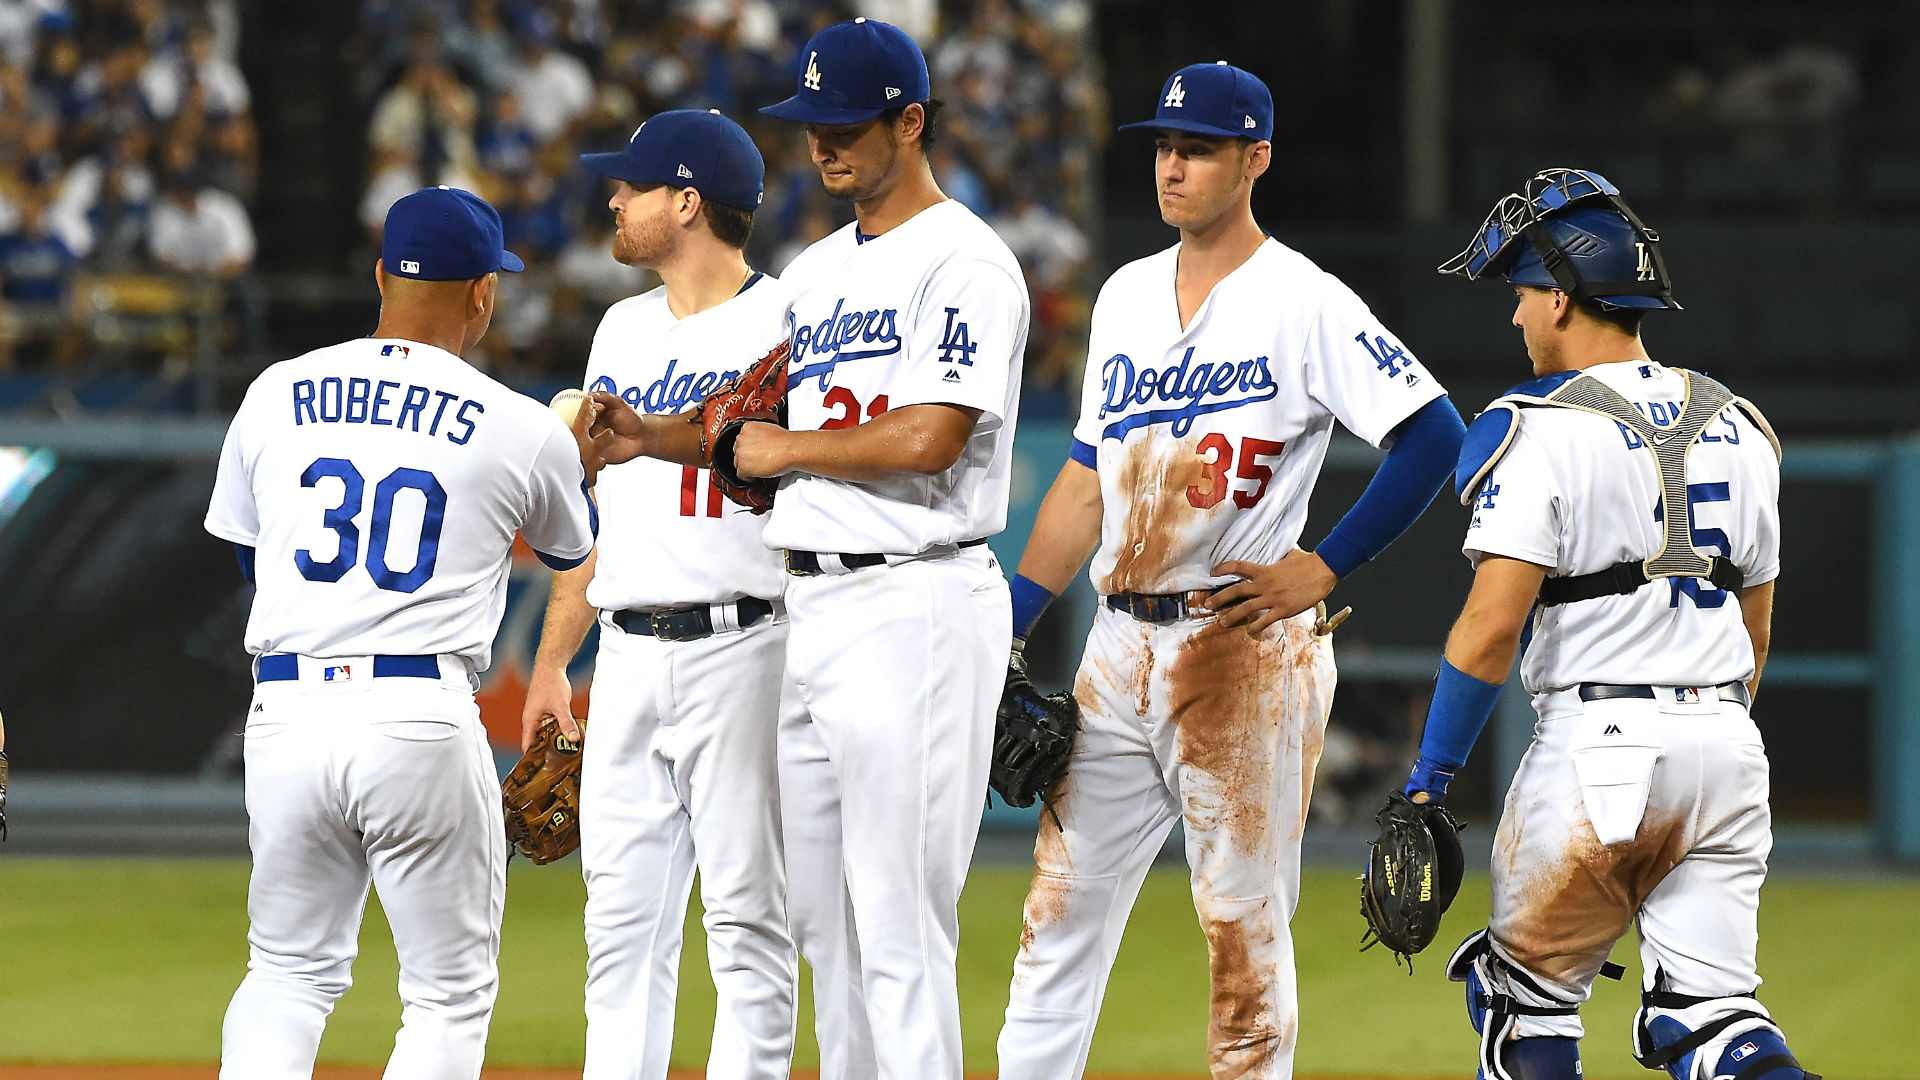 Dodgers, Padres Reportedly Will Play Series in Mexico Next Season